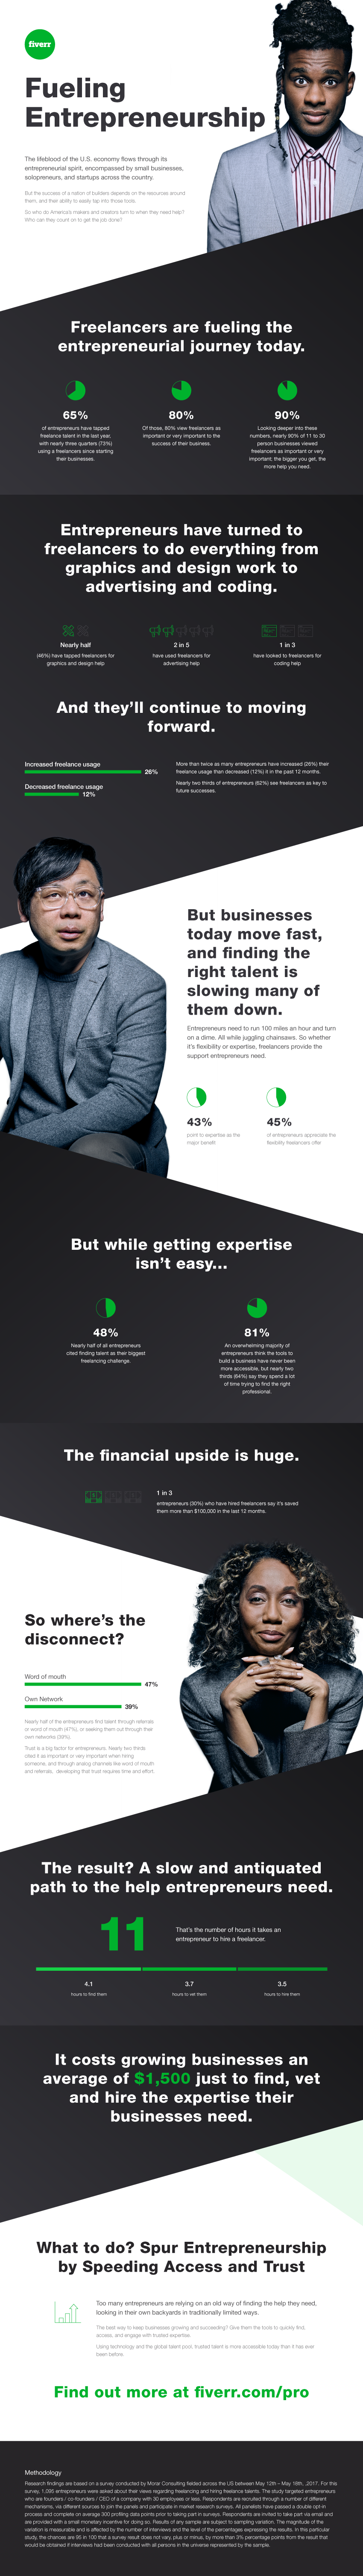 New Fiverr Pro Service Offers Handpicked Freelancers for Small Business (INFOGRAPHIC)